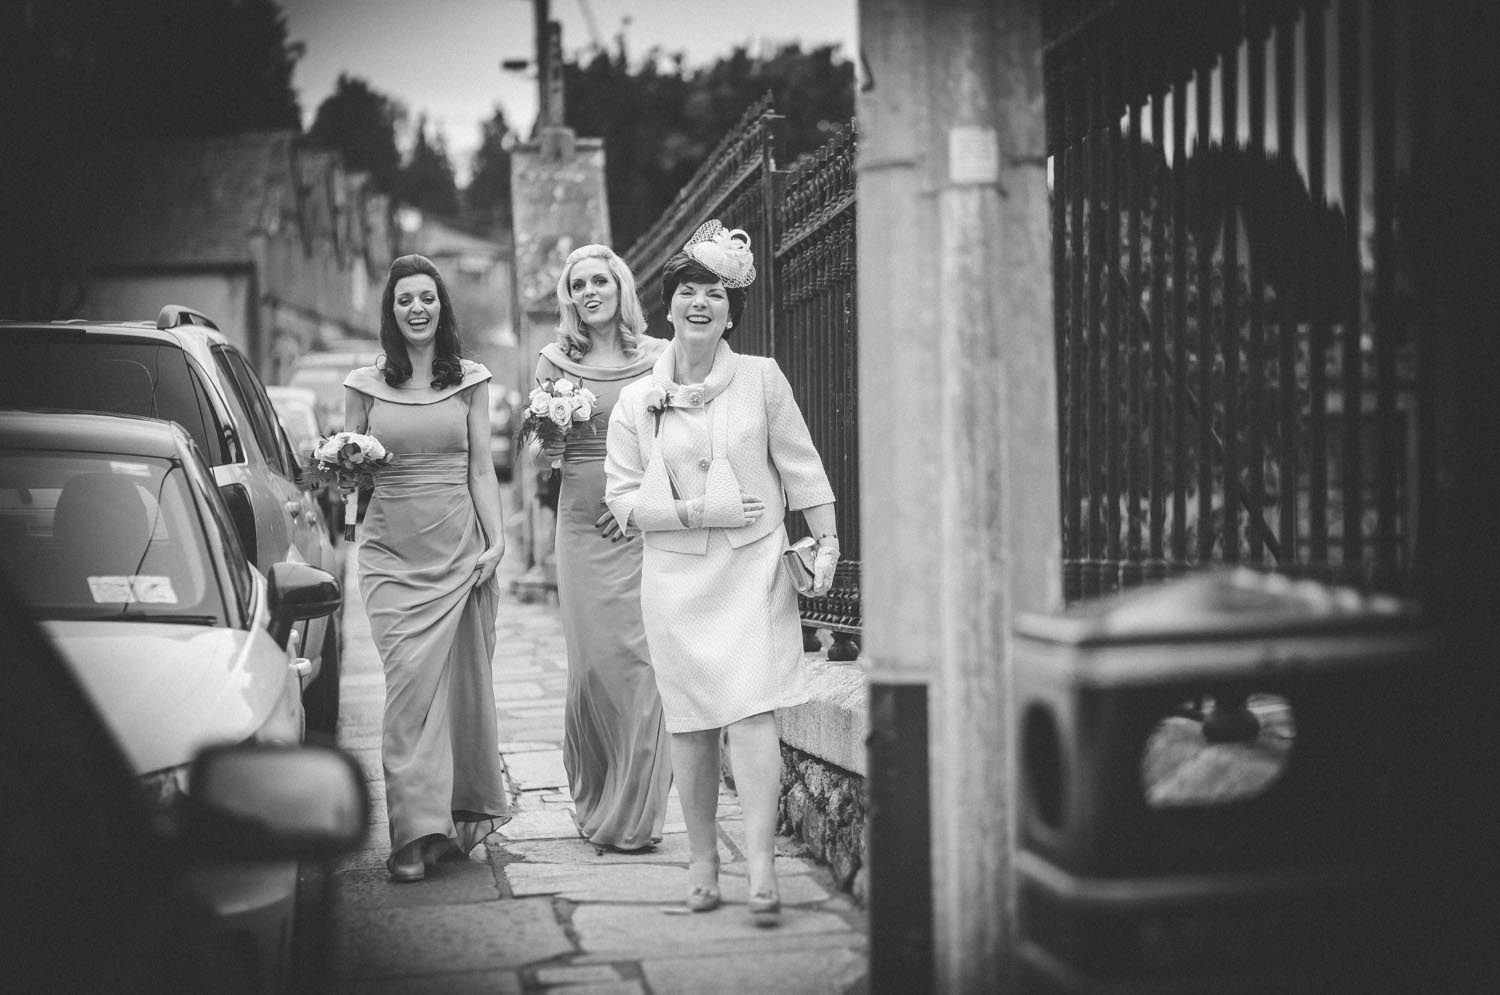 Step House wedding photographer Carlow Borris036.jpg